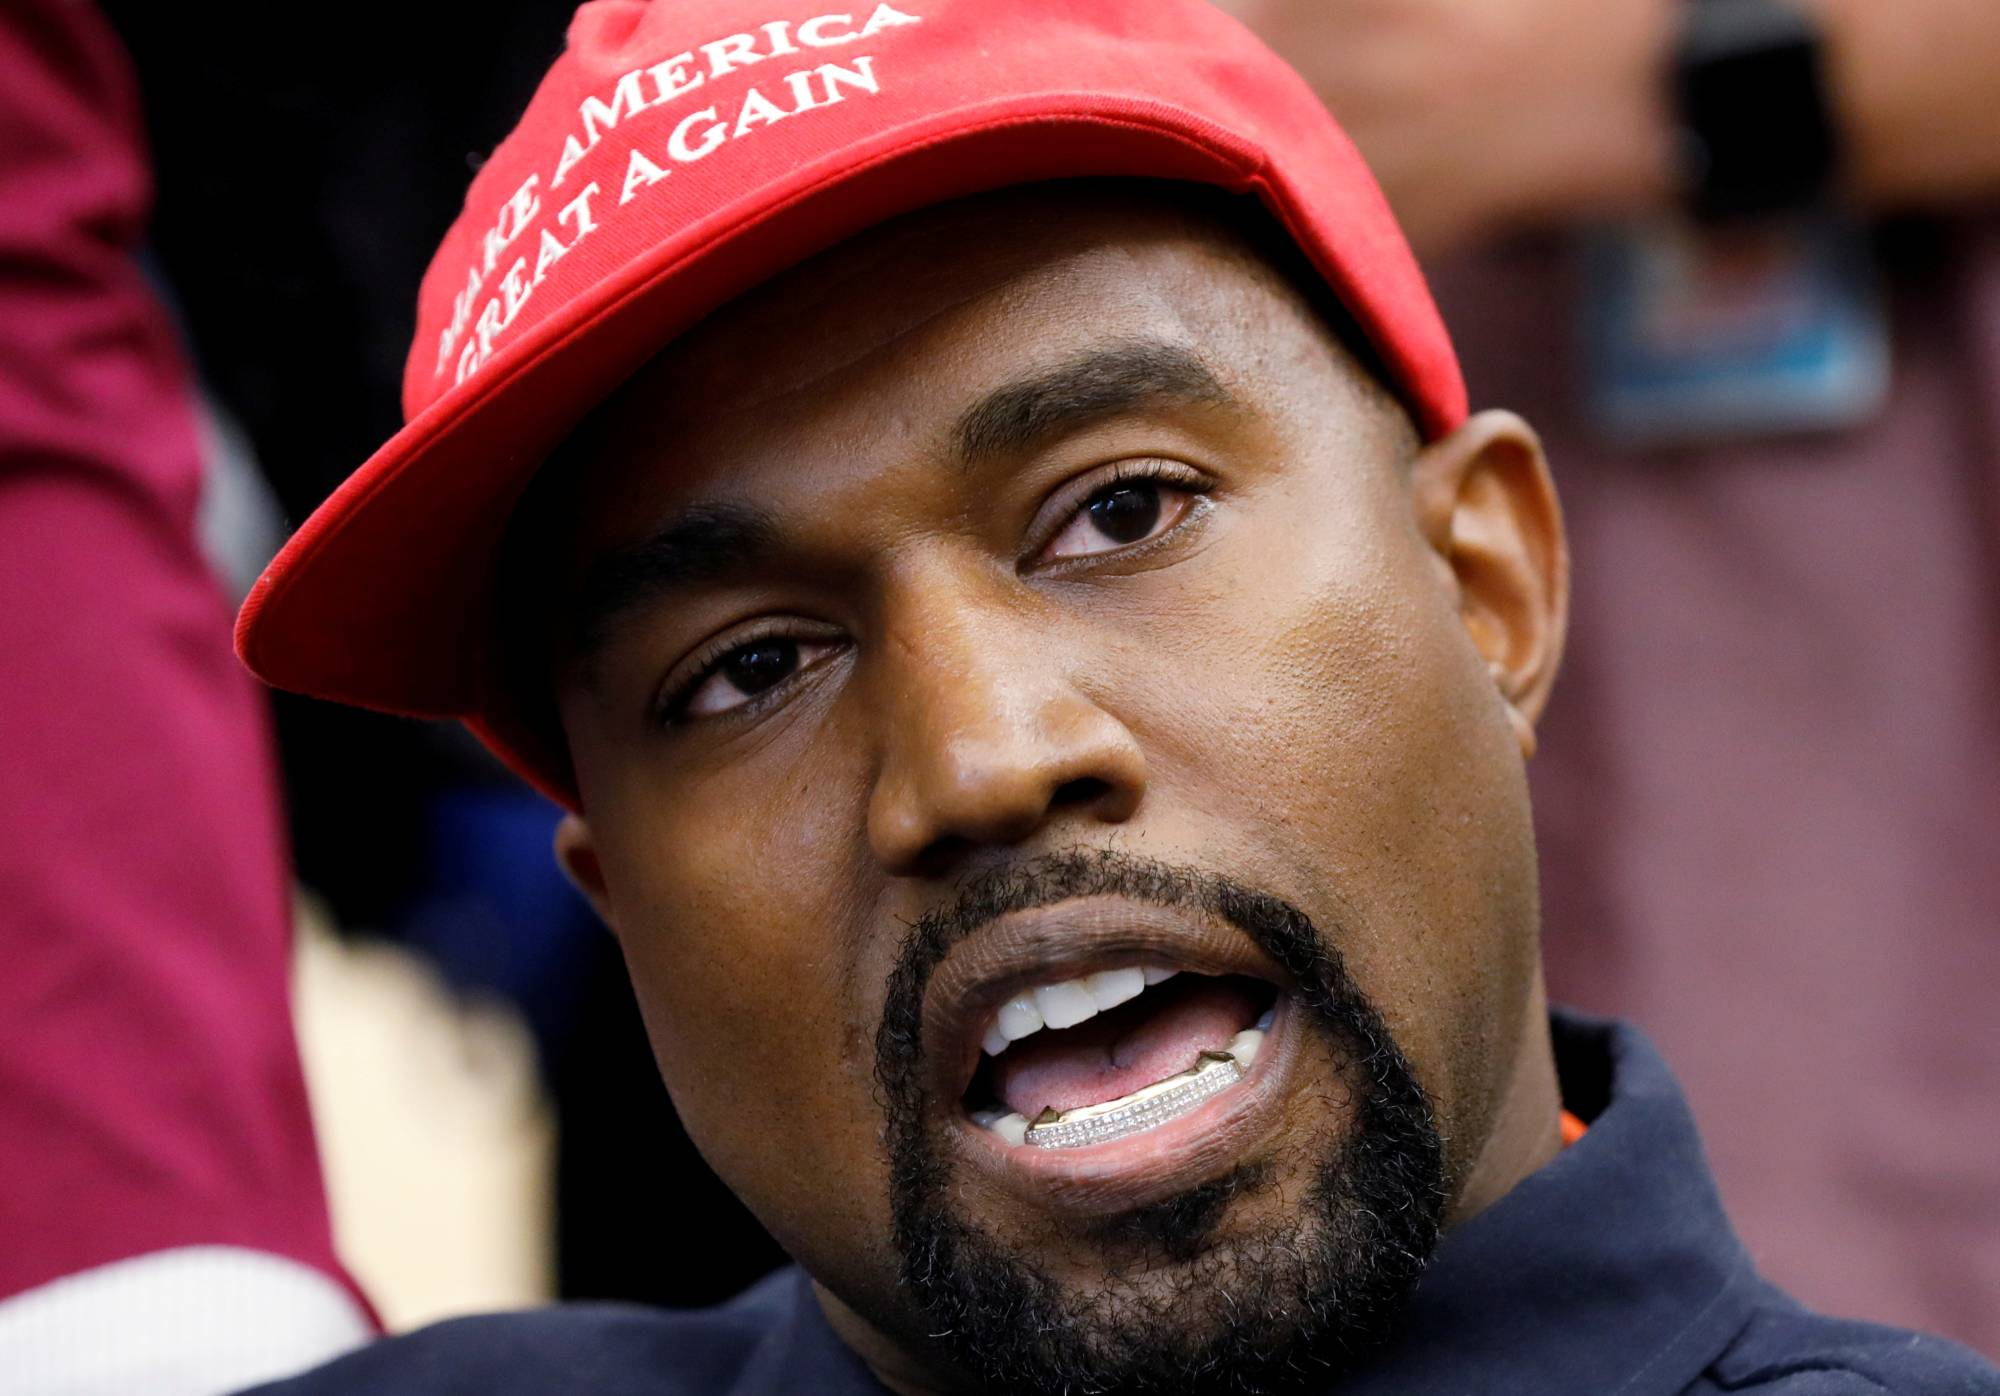 Musician Kanye West speaks during a meeting with U.S. President Donald Trump to discuss criminal justice reform in the Oval Office of the White House in Washington in October 2018.  | REUTERS